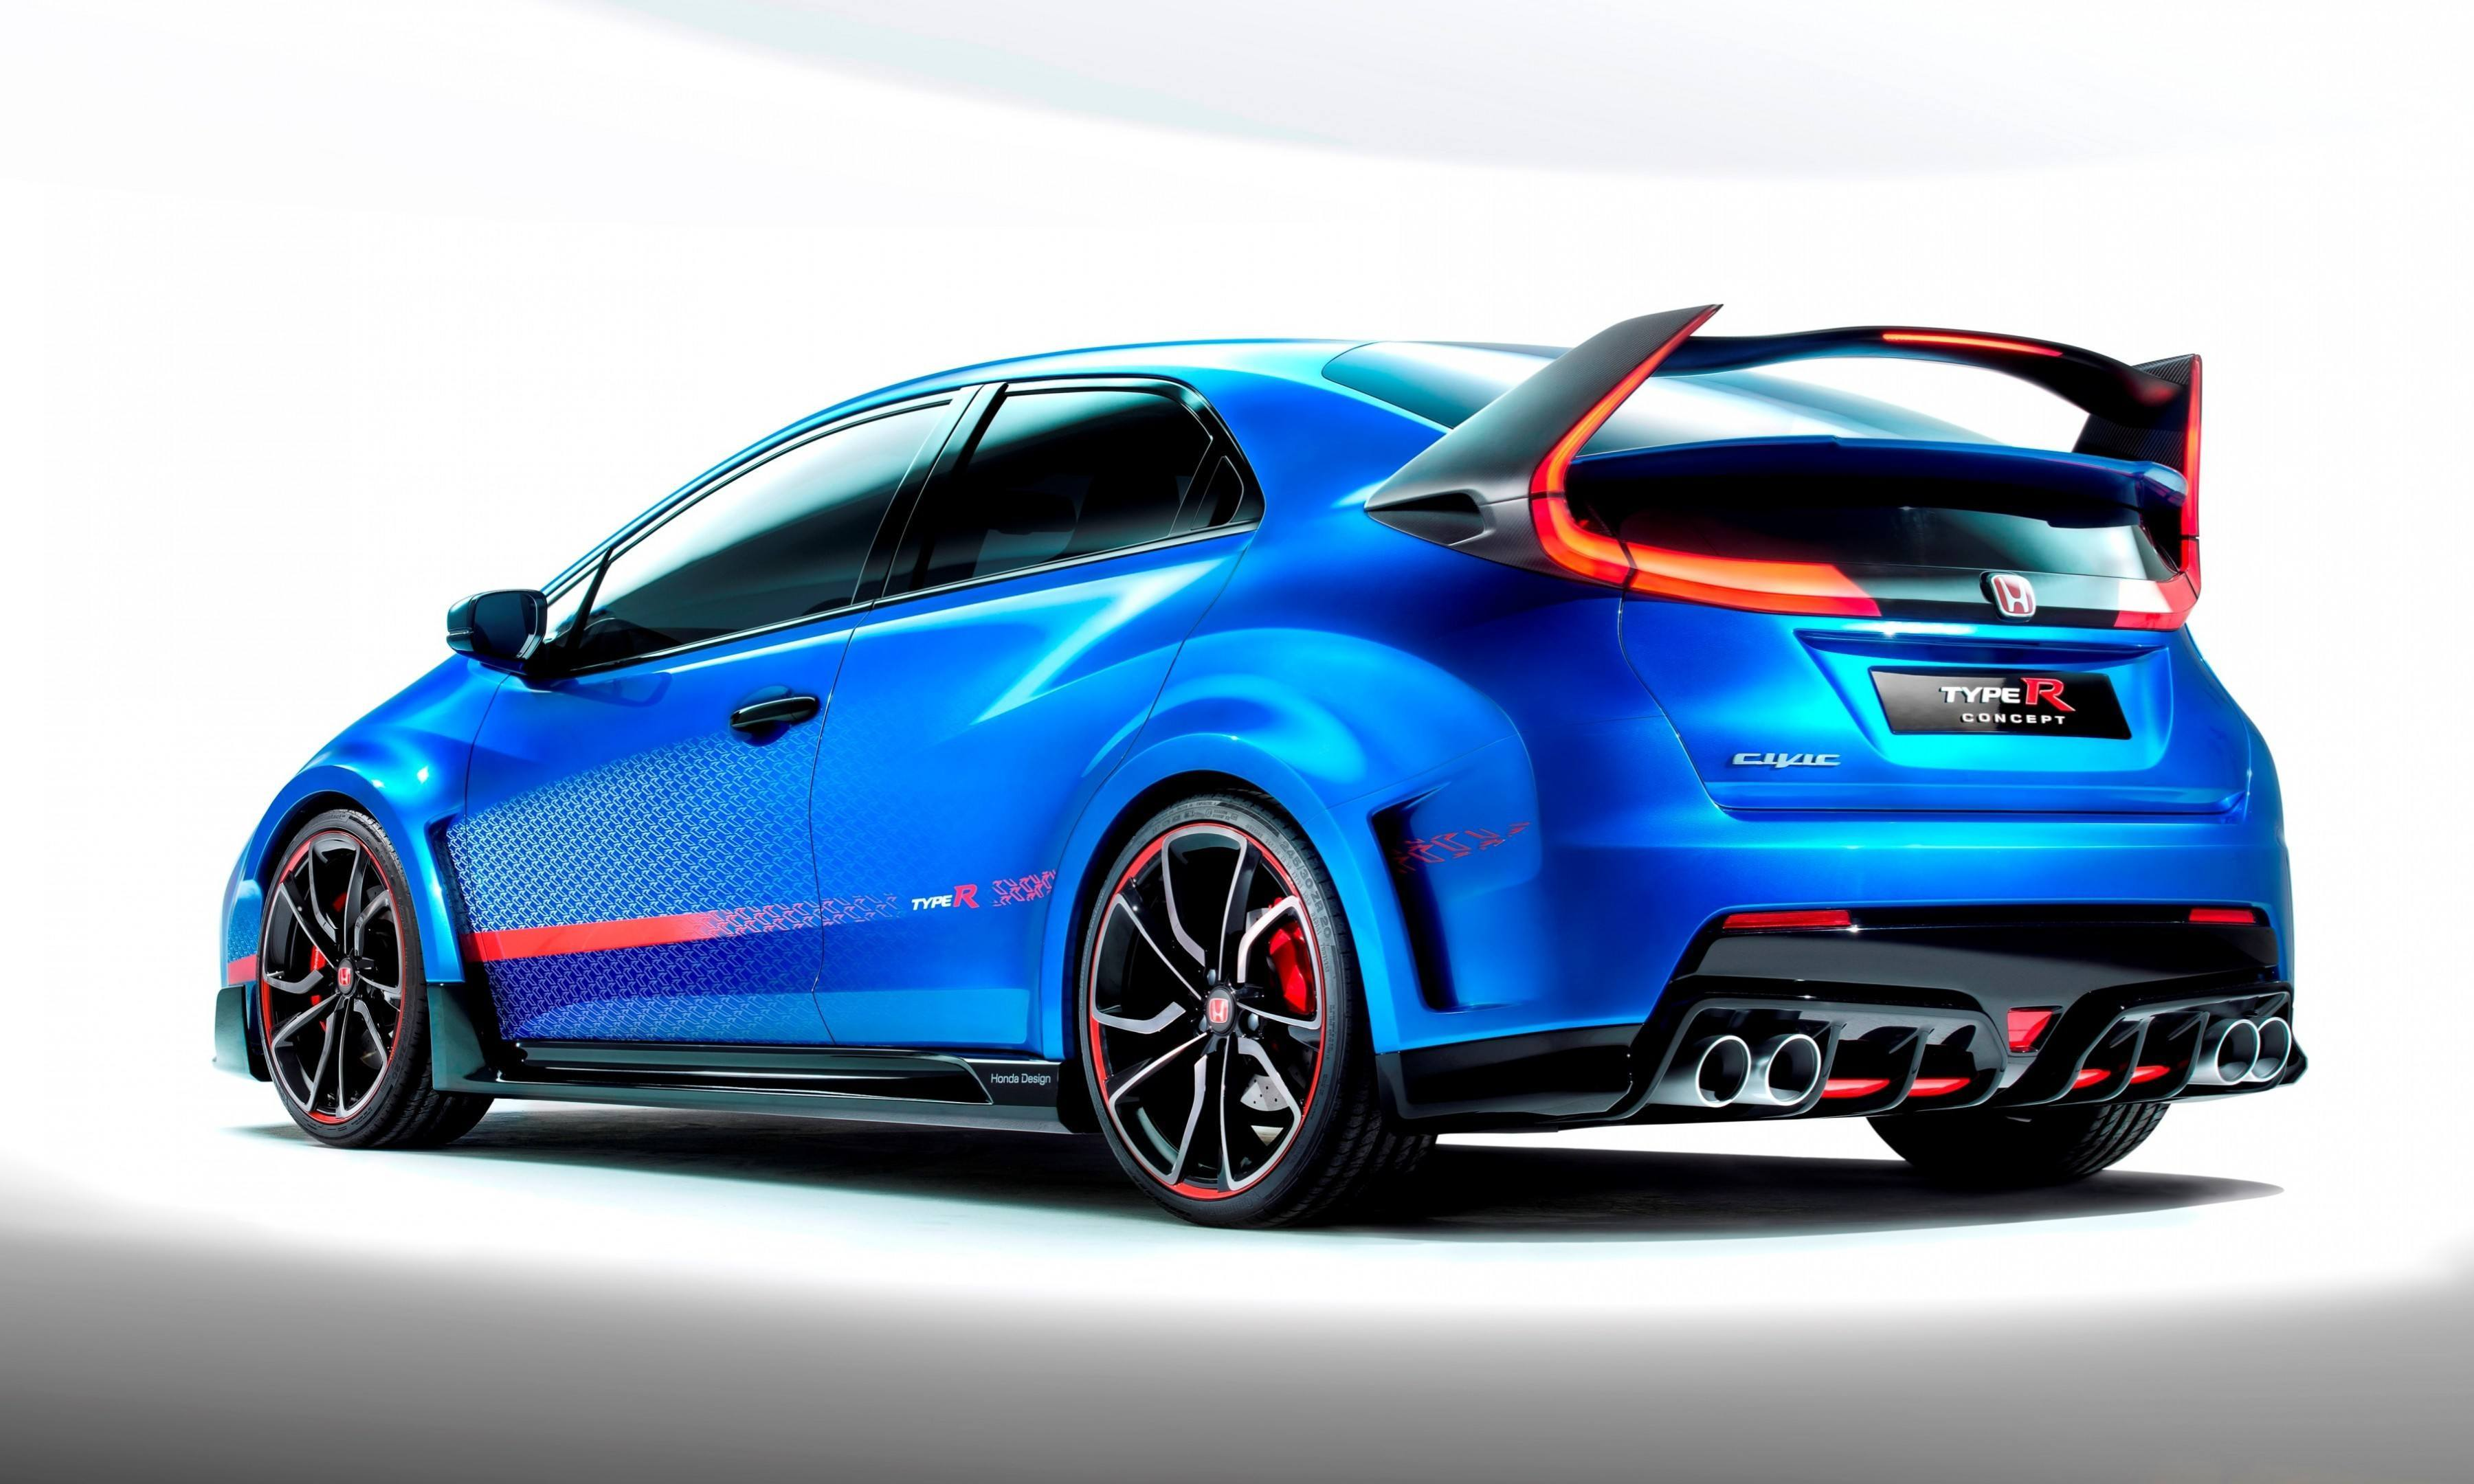 2015 honda civic type r previewed by crisp and clean new paris concept. Black Bedroom Furniture Sets. Home Design Ideas